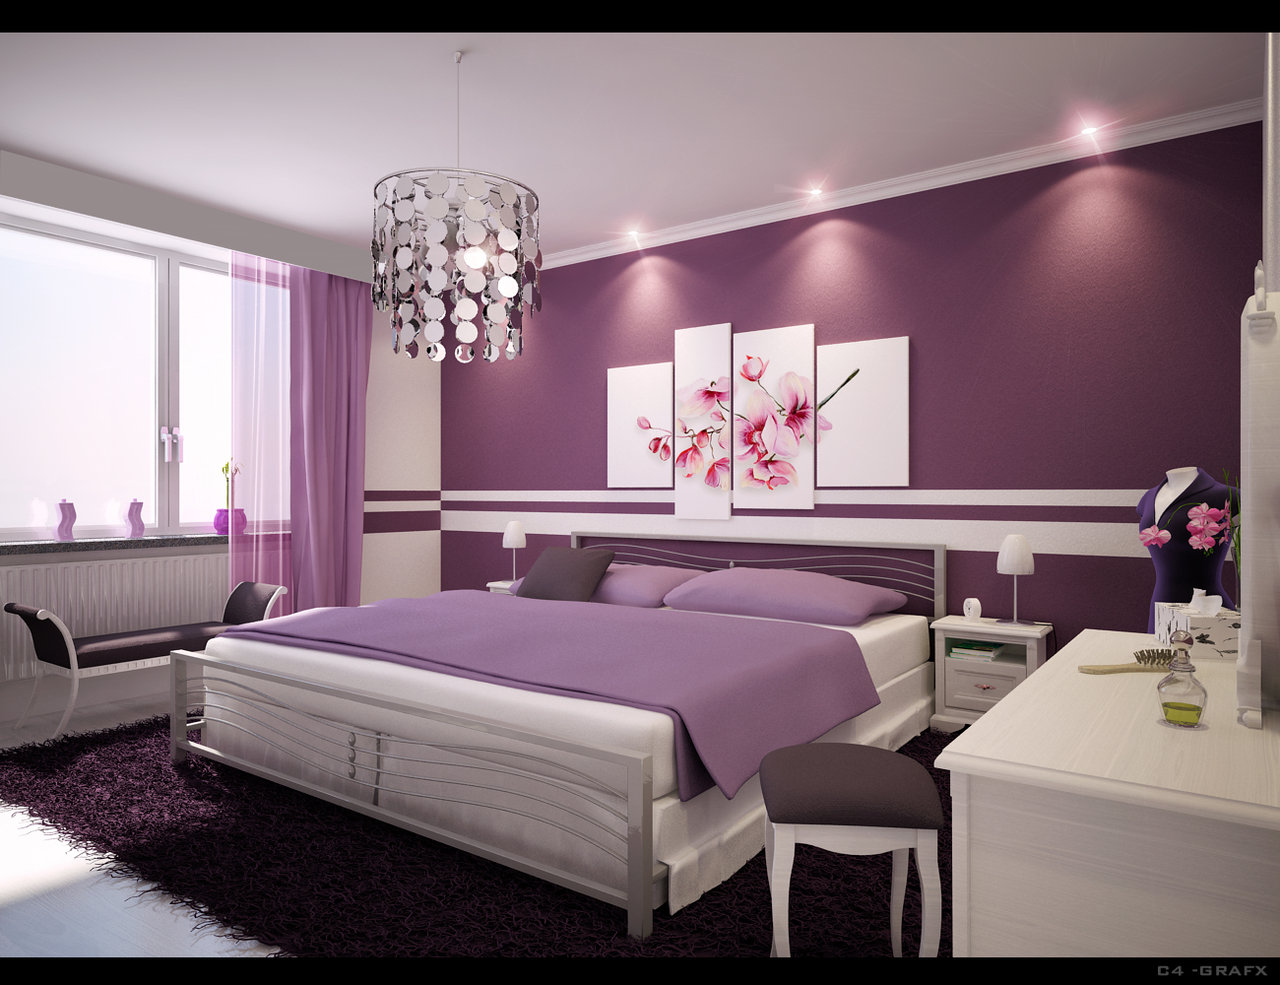 Magnificent Girls Bedroom Interior Design Ideas 1280 x 985 · 201 kB · jpeg